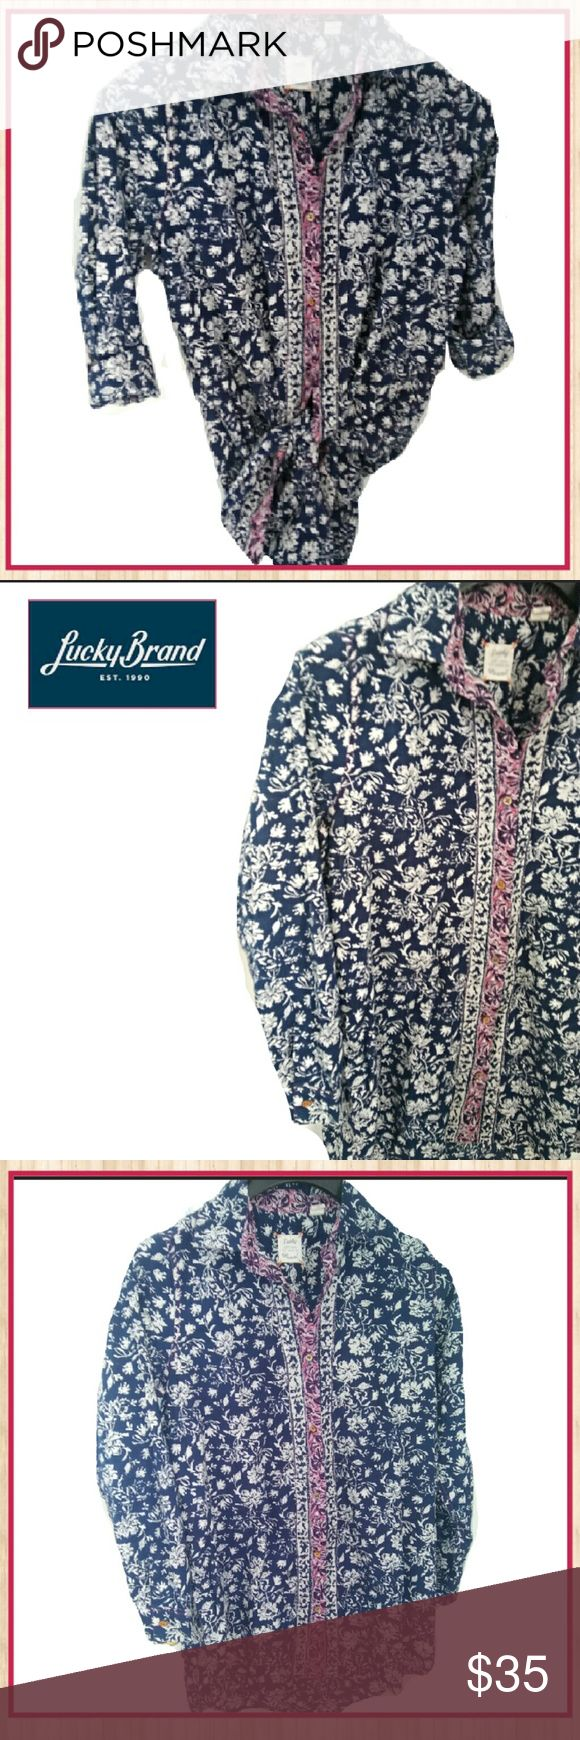 Lucky Brand NWOT Lucky Brand Button Down for Ladies This floral button down by Lucky Brand is so versatile! You can wear it: tucked in with arms rolled down or up, you can tie up front, as seen on picture 1, and sleeves down or up OR you can leave untucked if you wish. Wear with jeans, shorts, khakis, sandals or tennis shoes. Just about any shoe will work with this top! Make us an offer or hit buy now today! Rock'N Ship is top rated and we add new items daily! Lucky Brand Tops Blouses